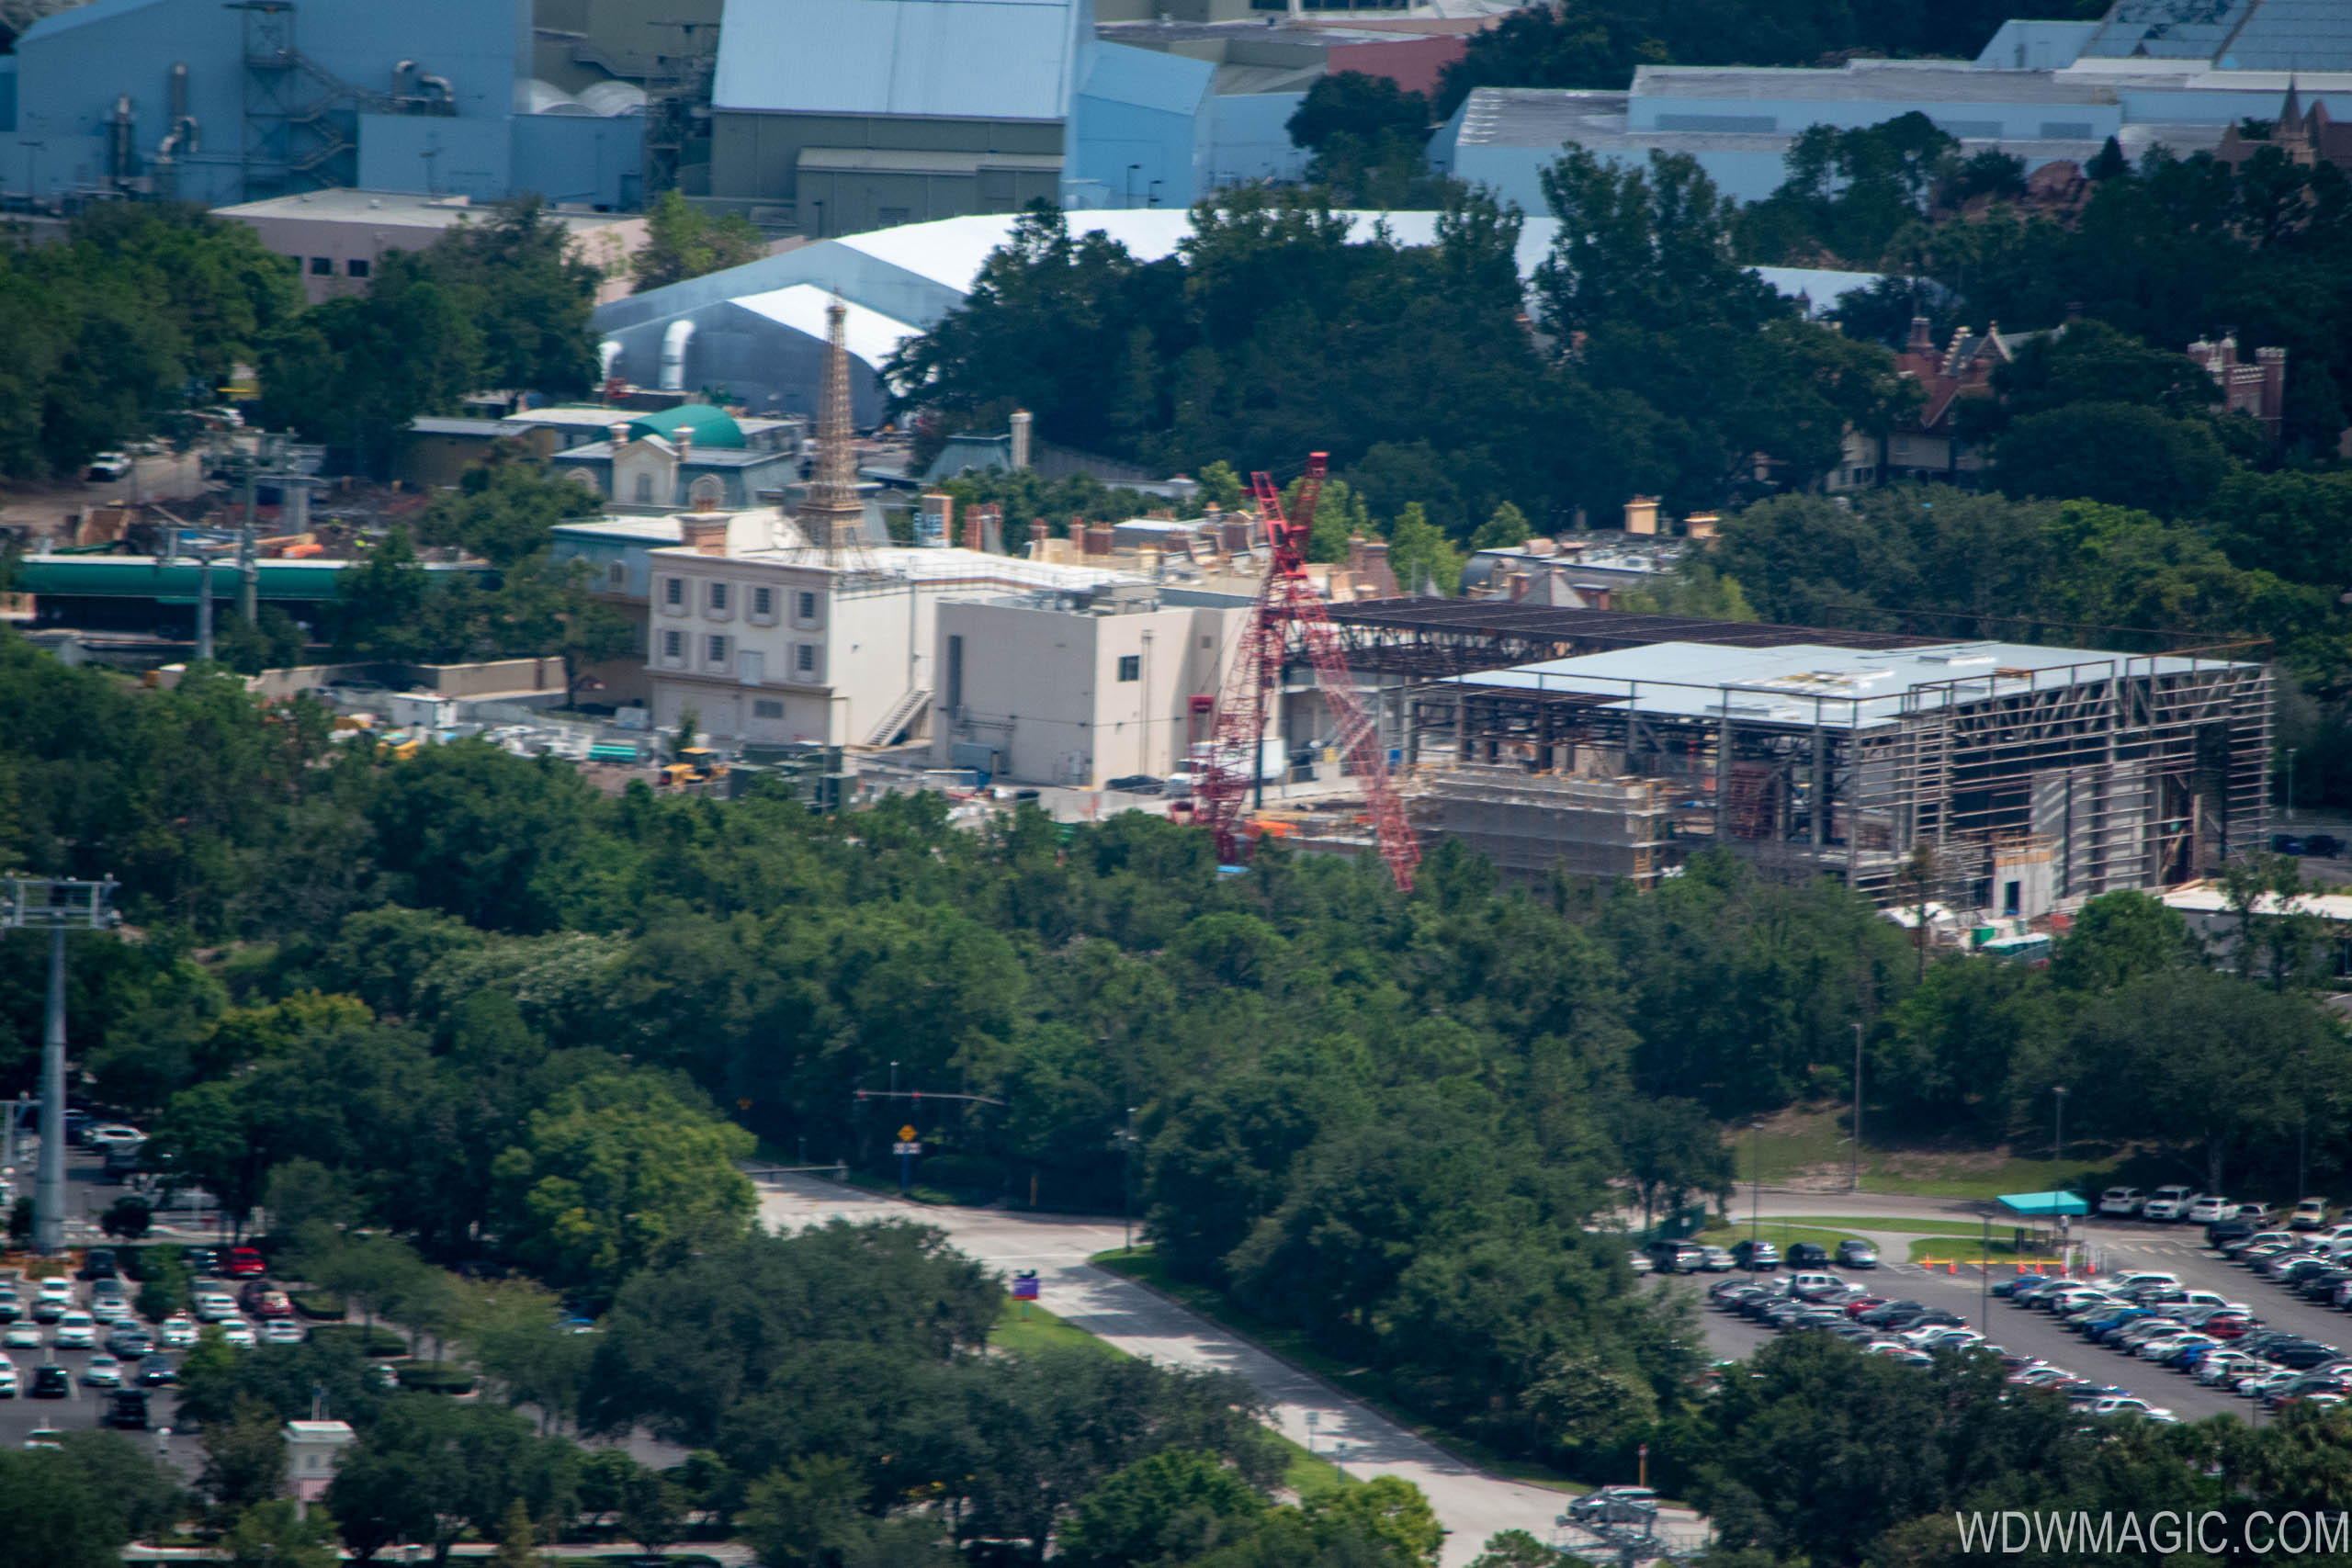 Ratatouille aerial construction pictures - July 2018